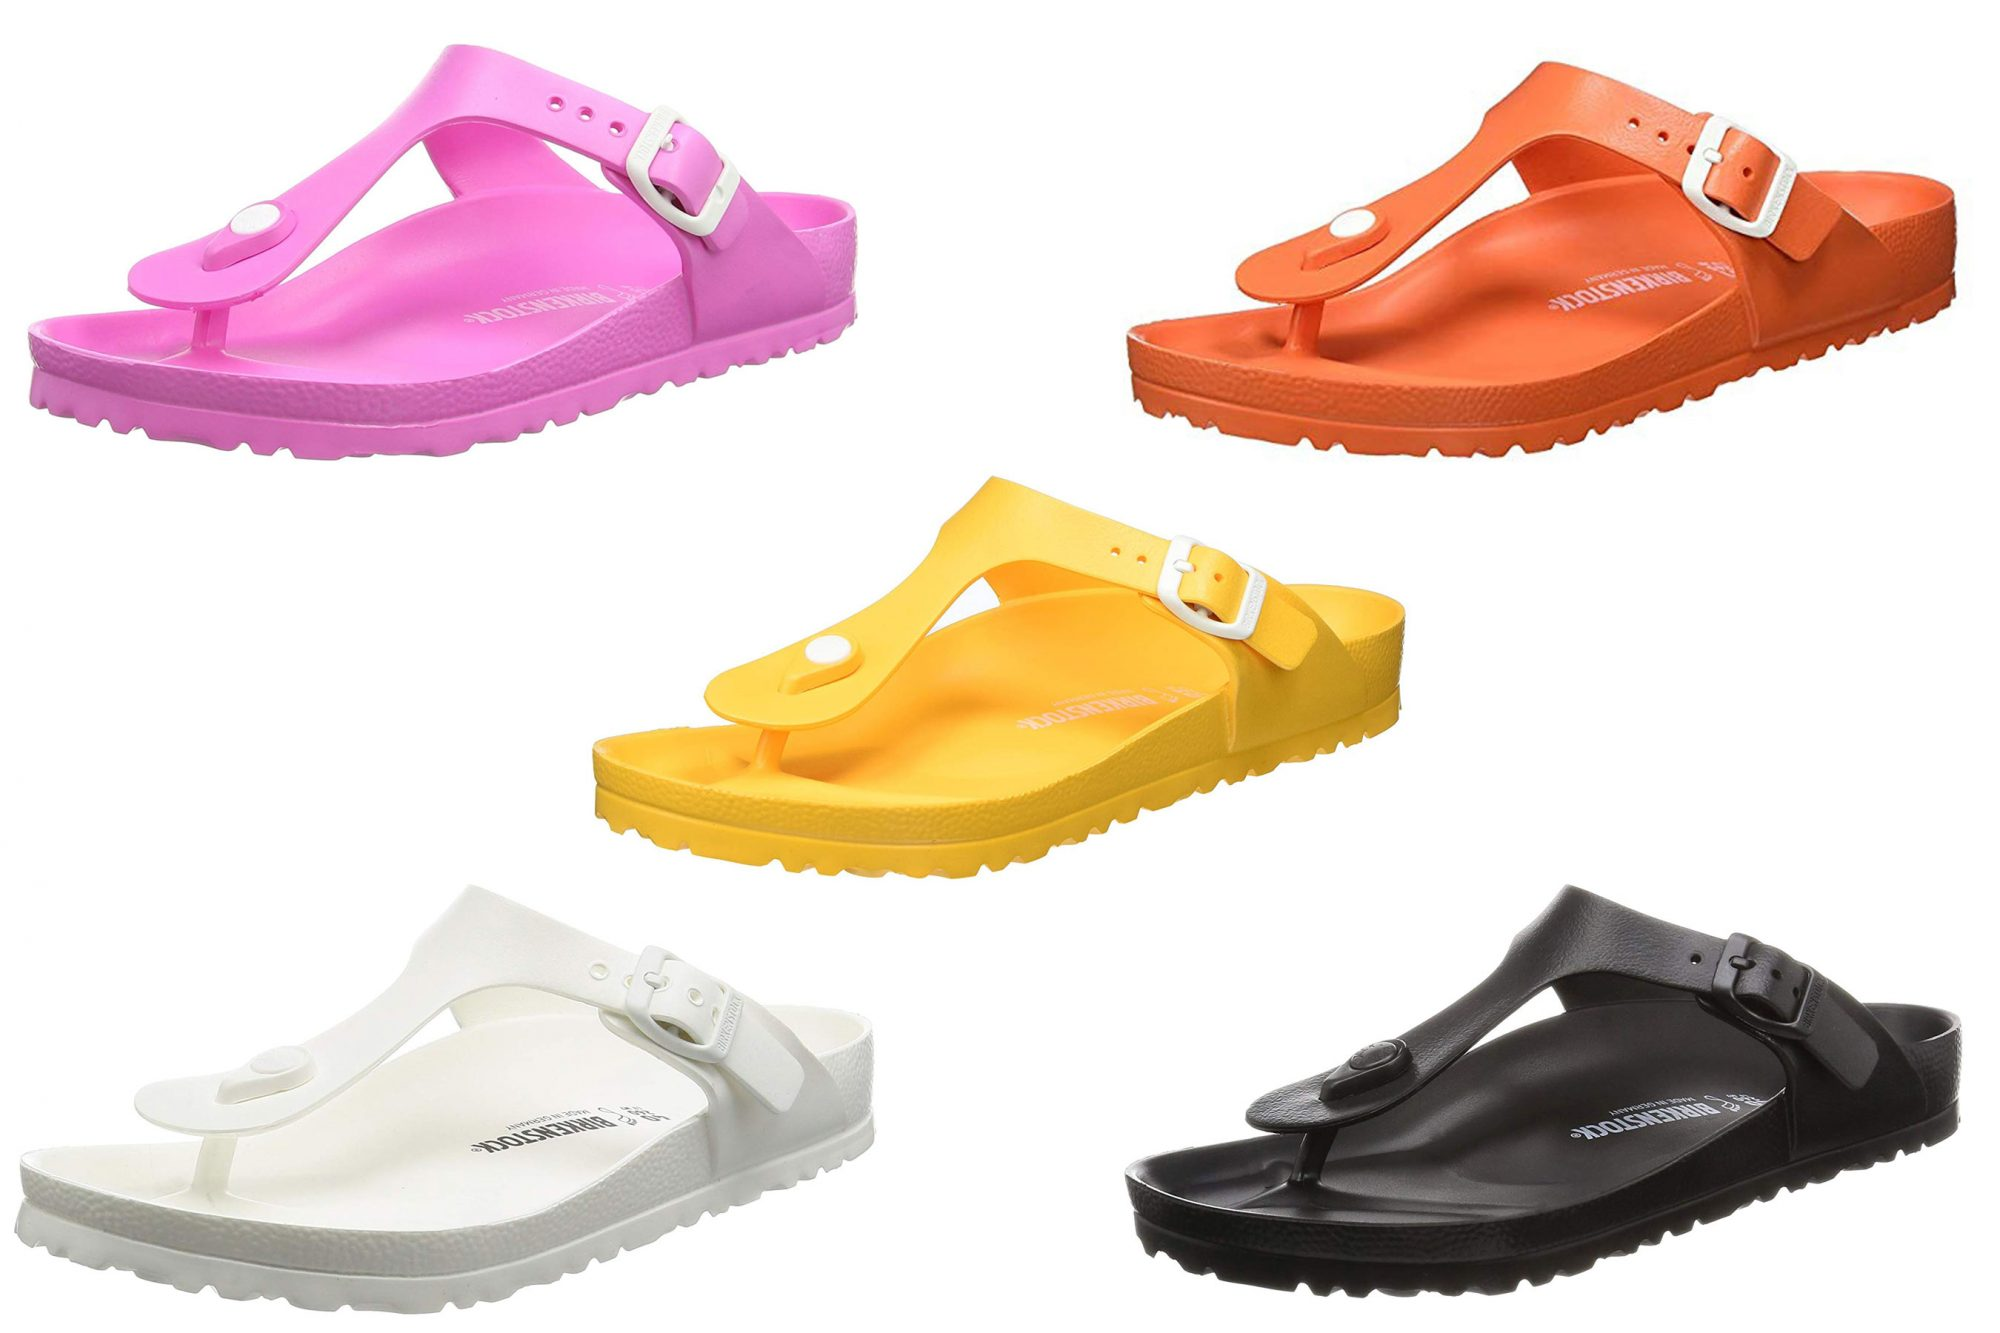 Birkenstock Gizeh Sandals Are One of